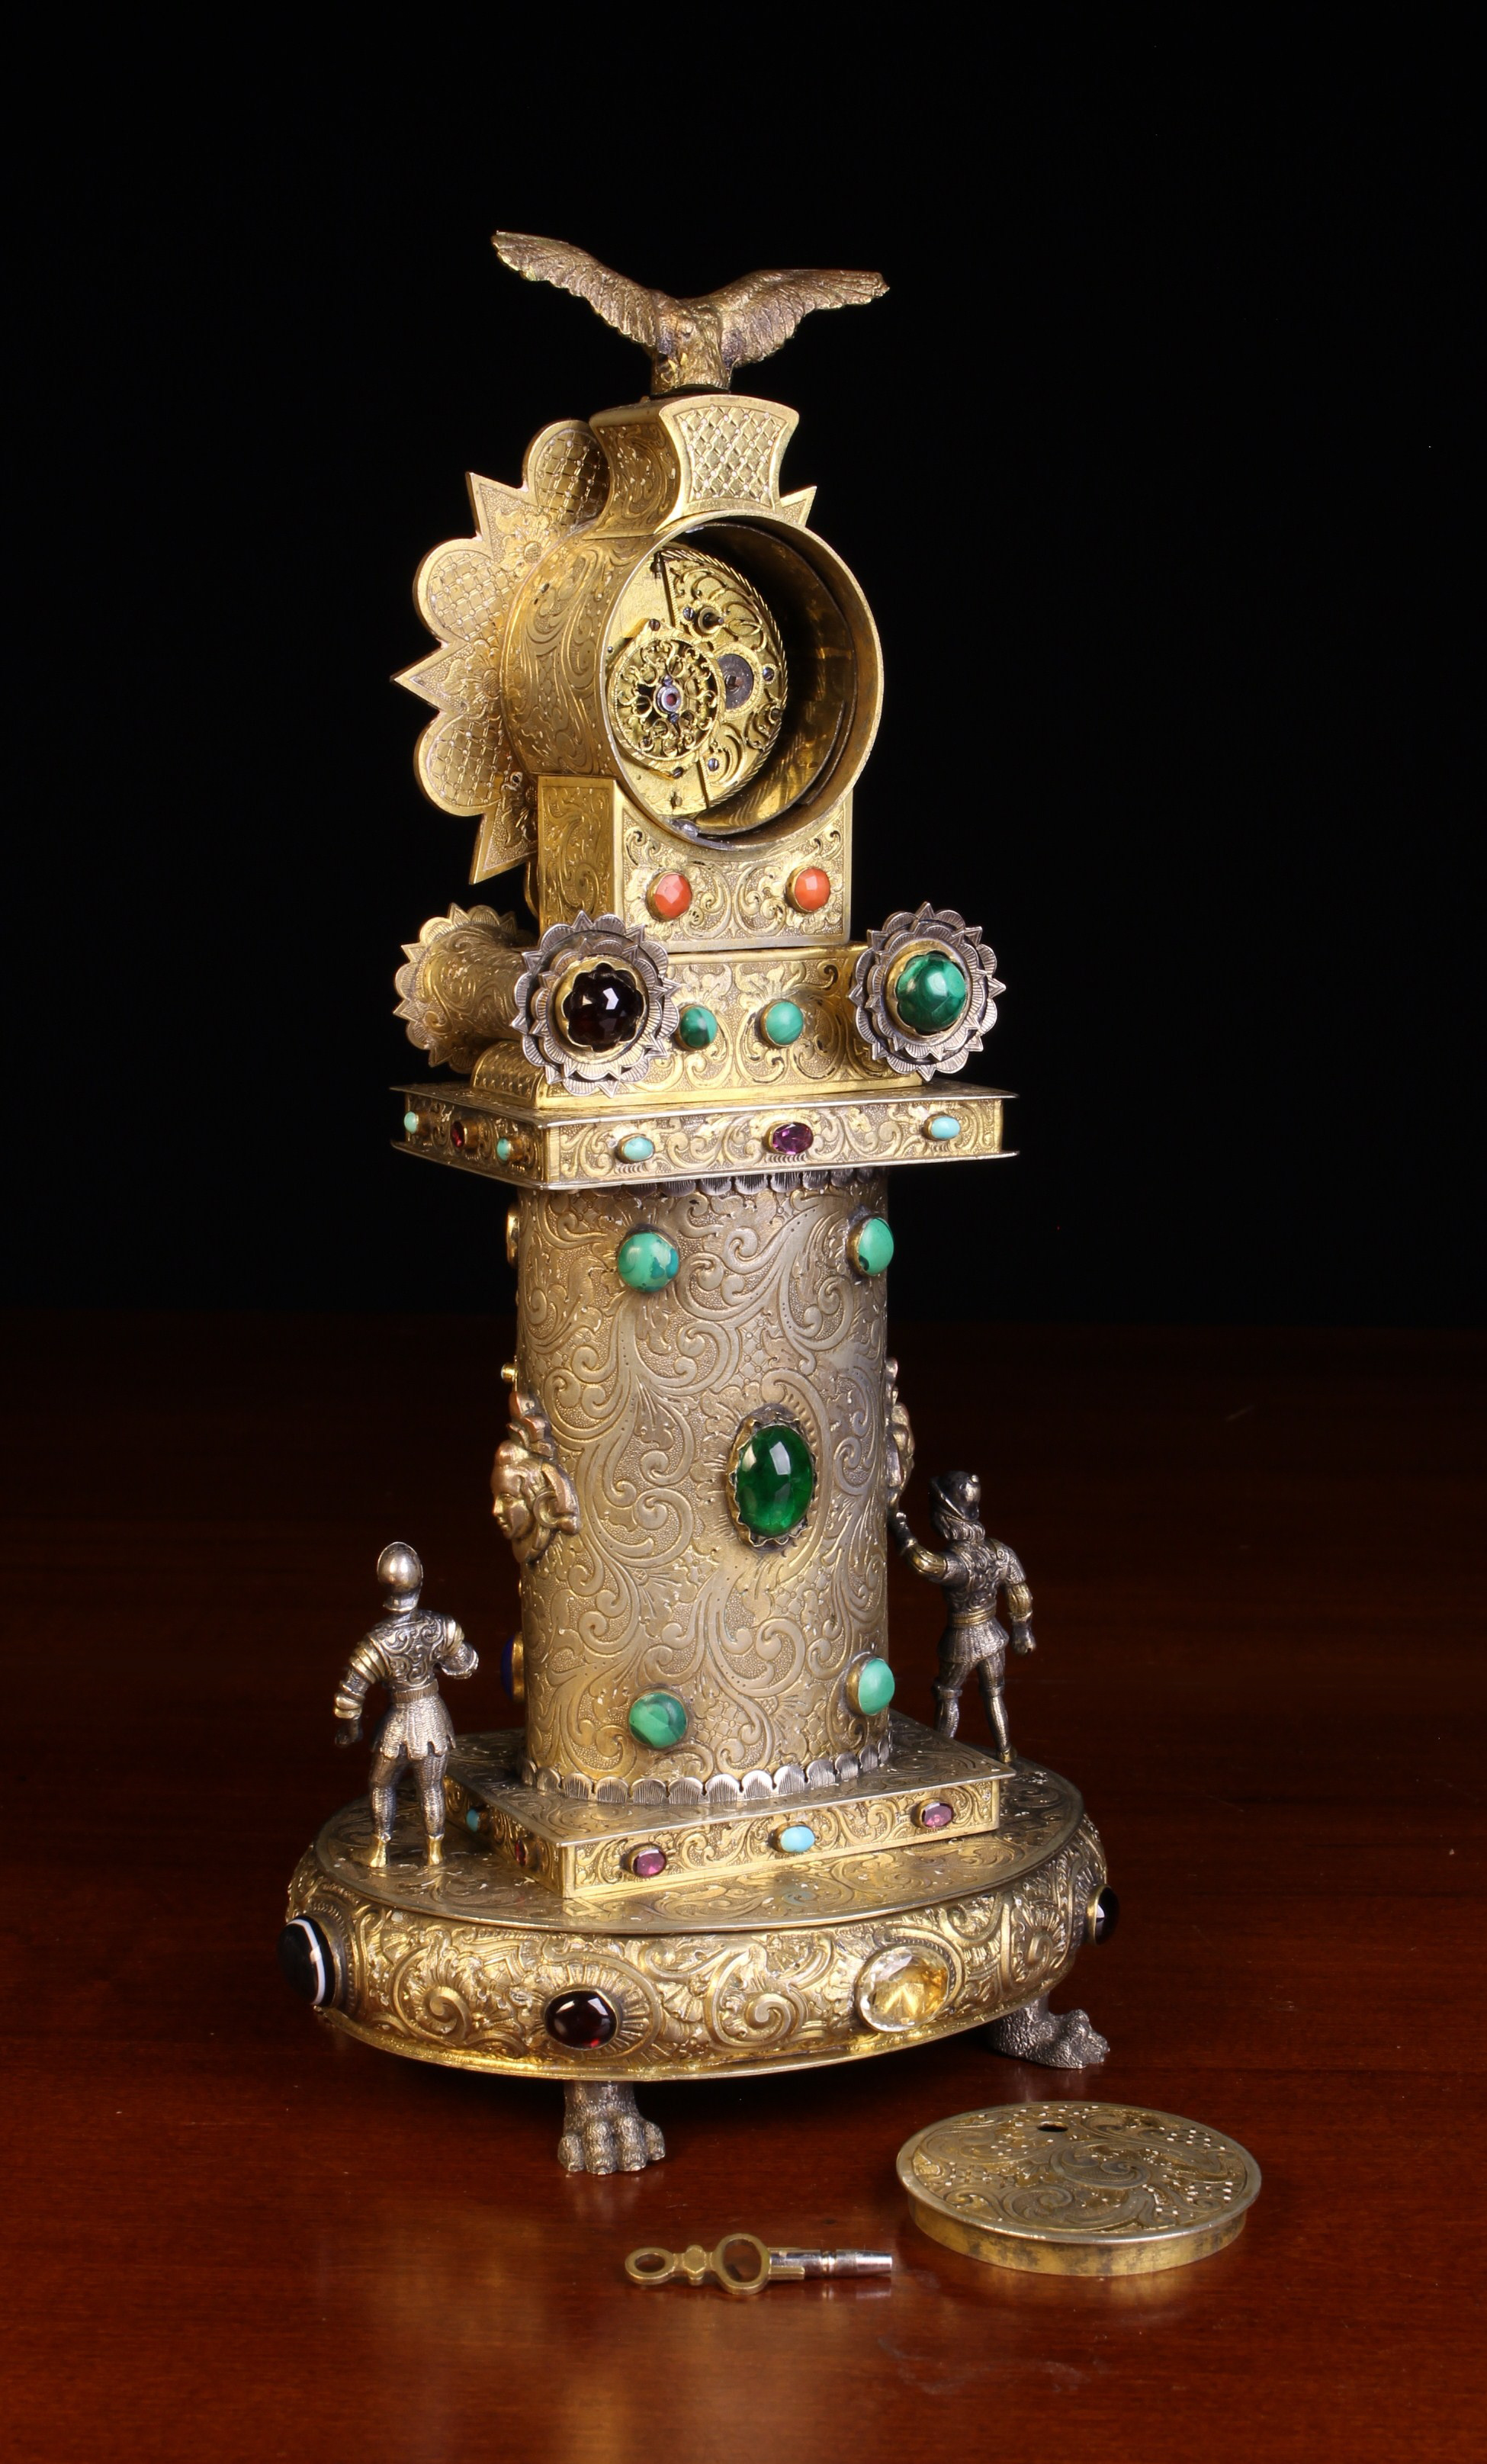 A 19th Century Viennese Silver & Gilt Metal Table Clock encrusted with jewels. - Image 4 of 4